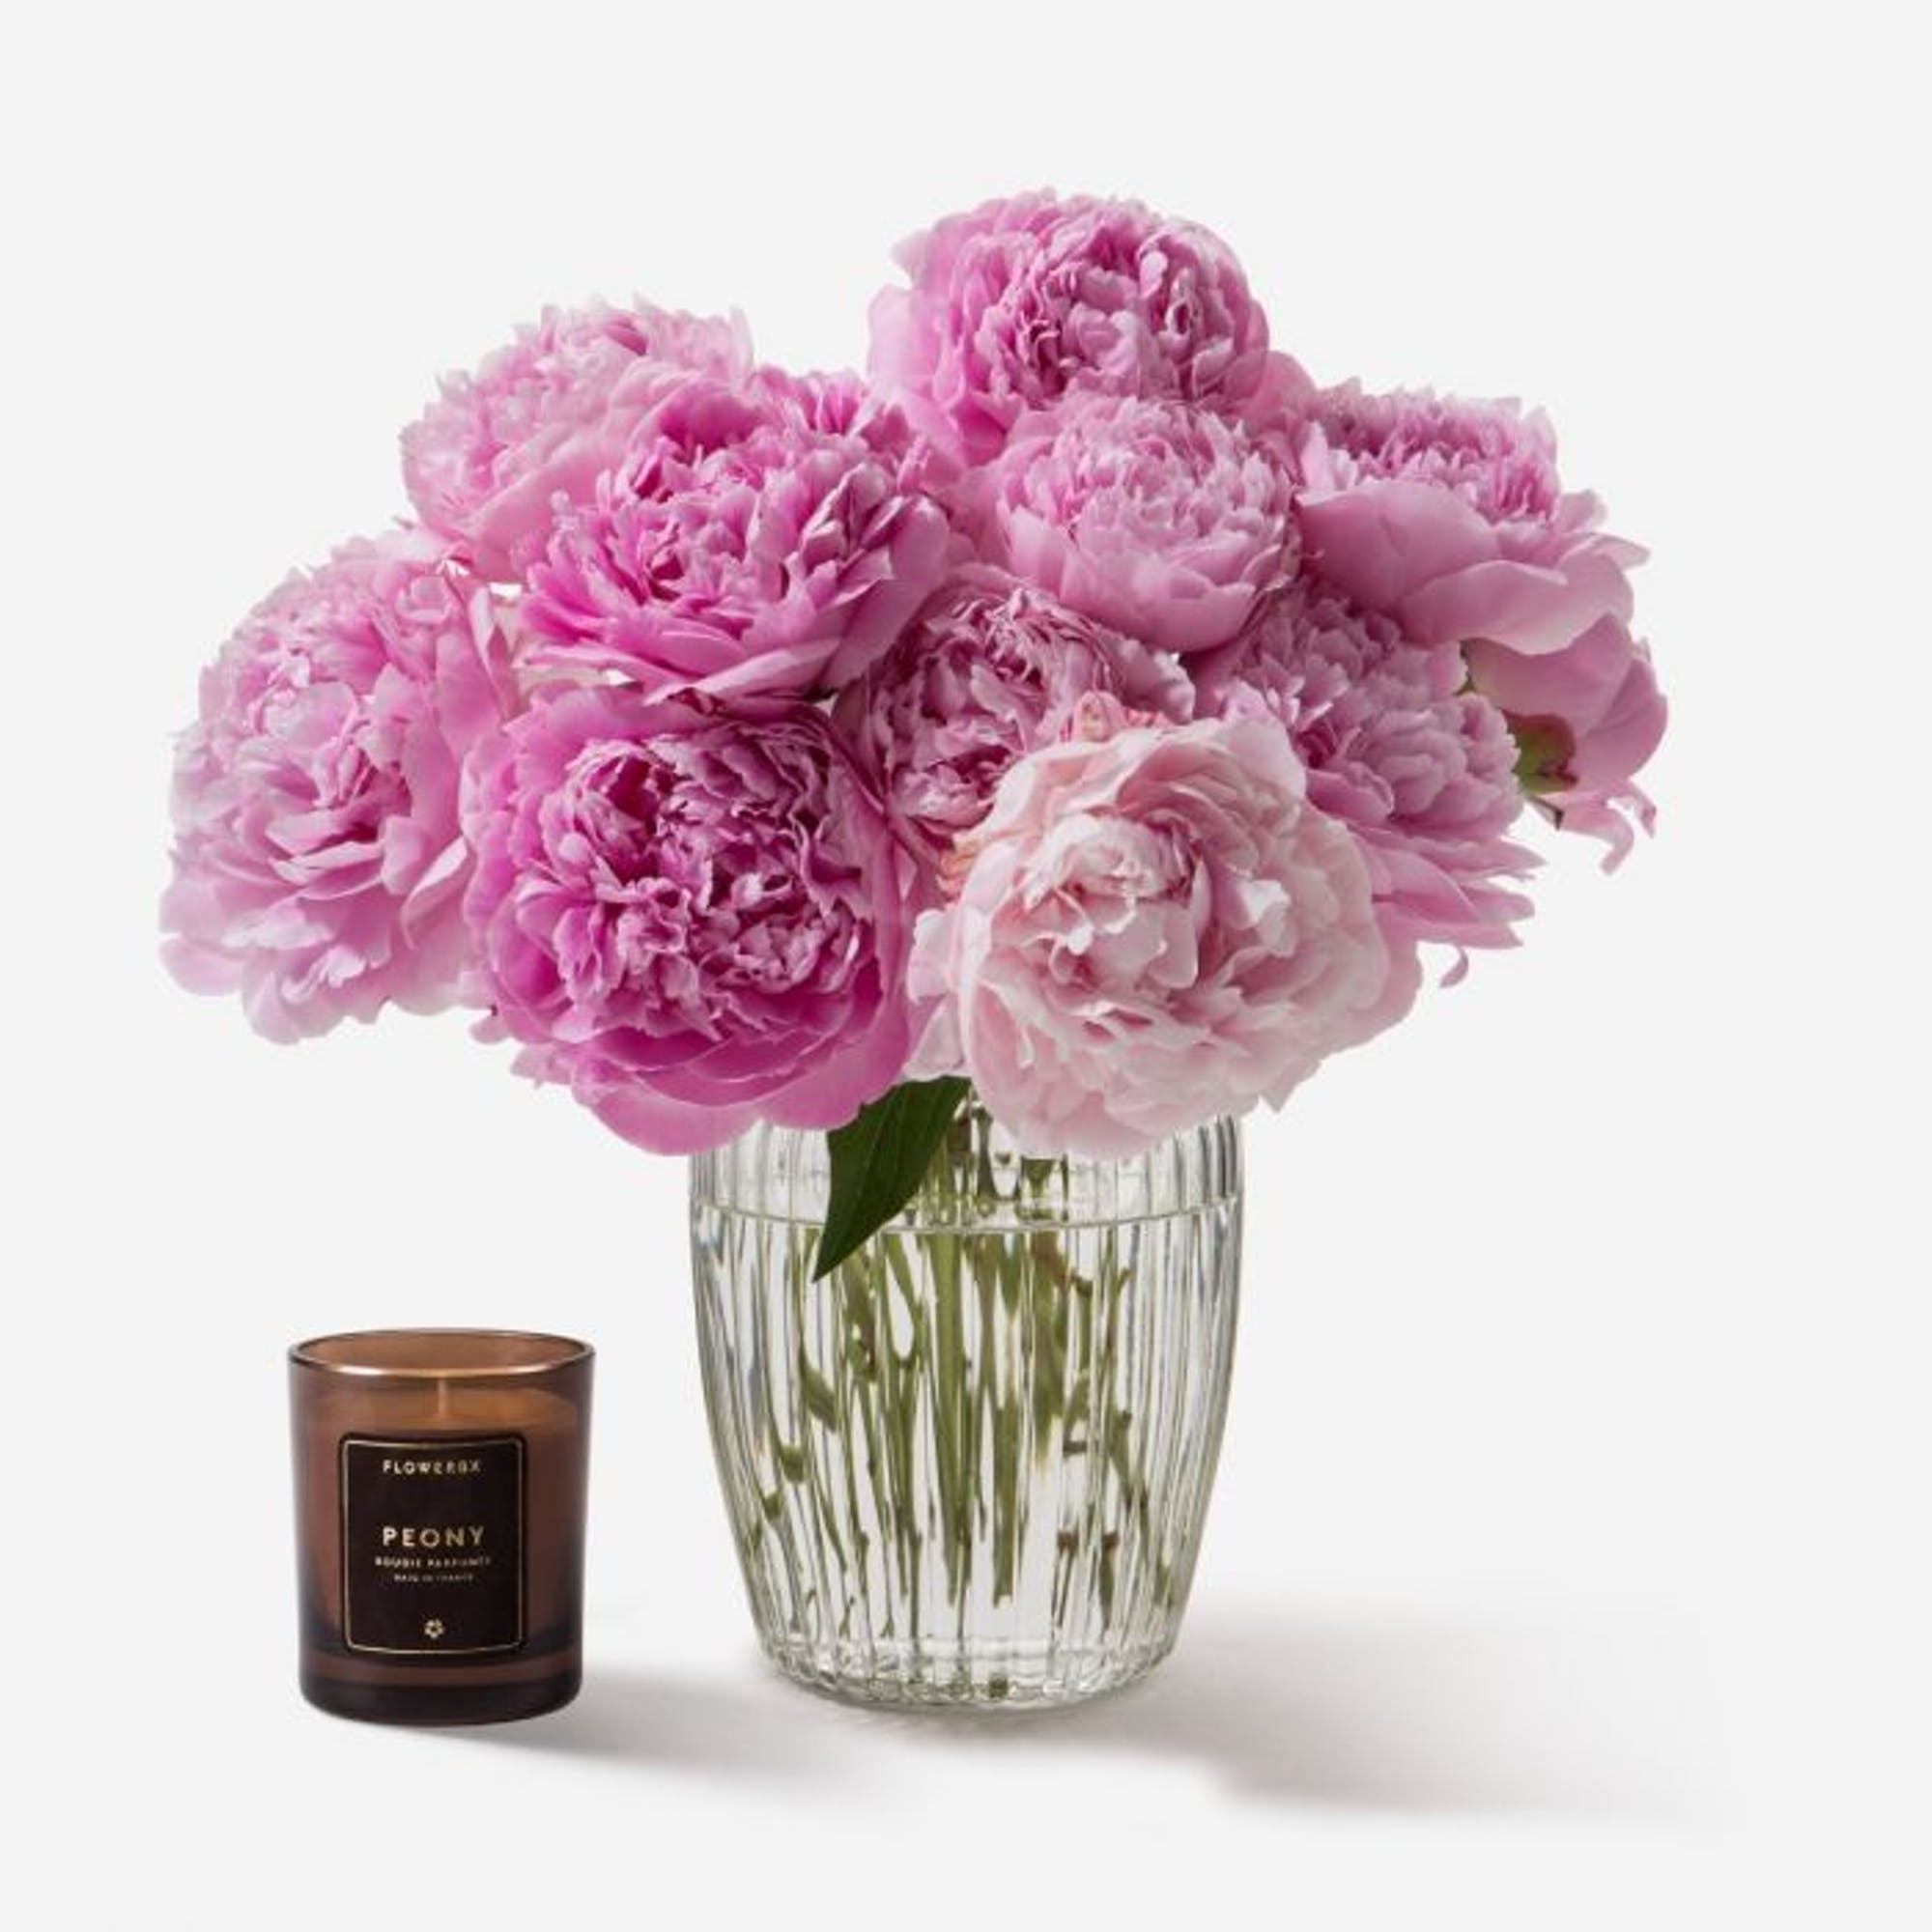 The Walpole Daily Practice  Bring Spring into your home with FLOWERBX